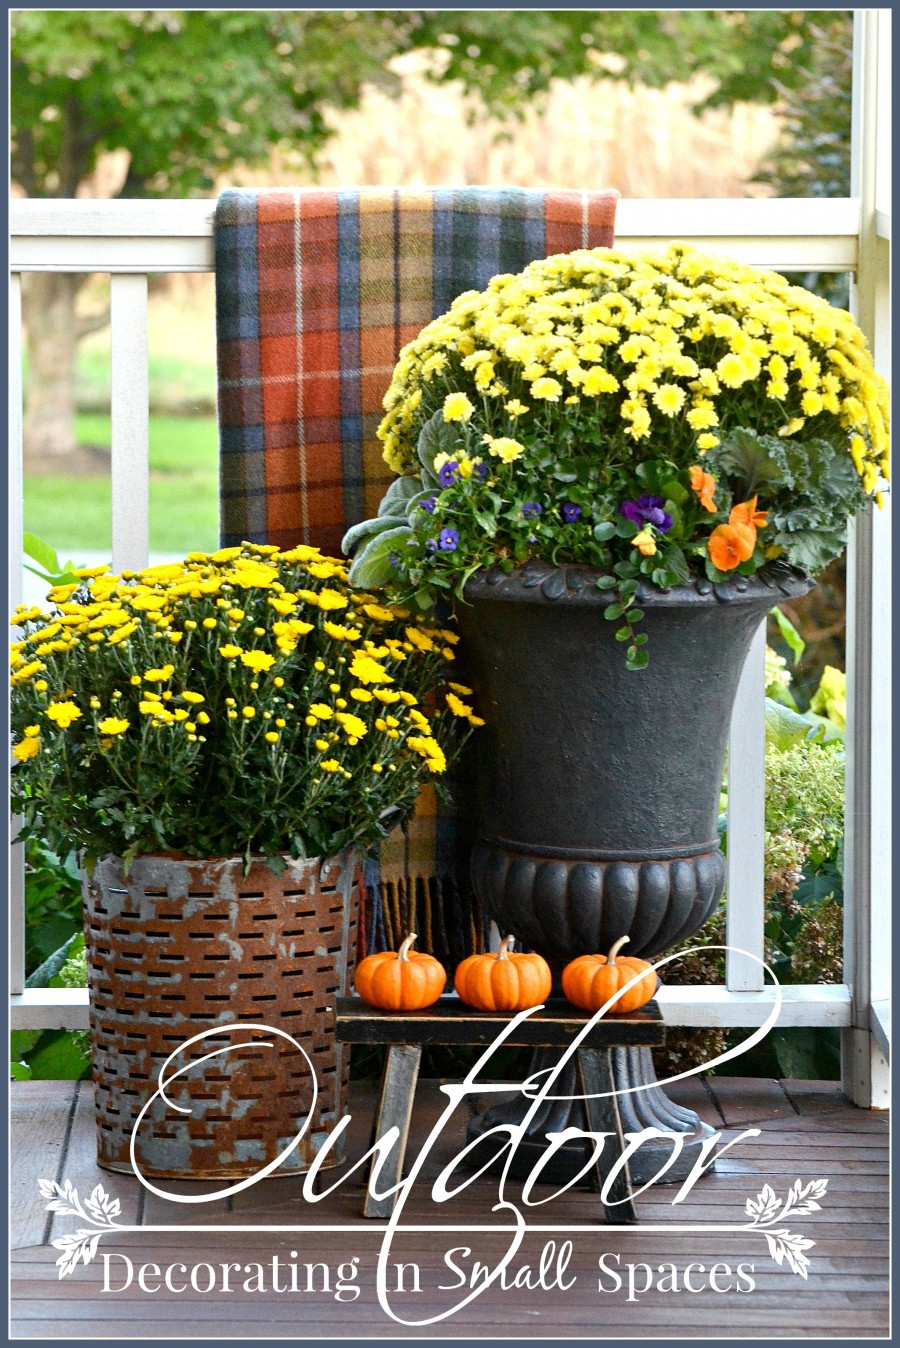 OUTDOOR FALL DECORATING IN SMALL SPACES